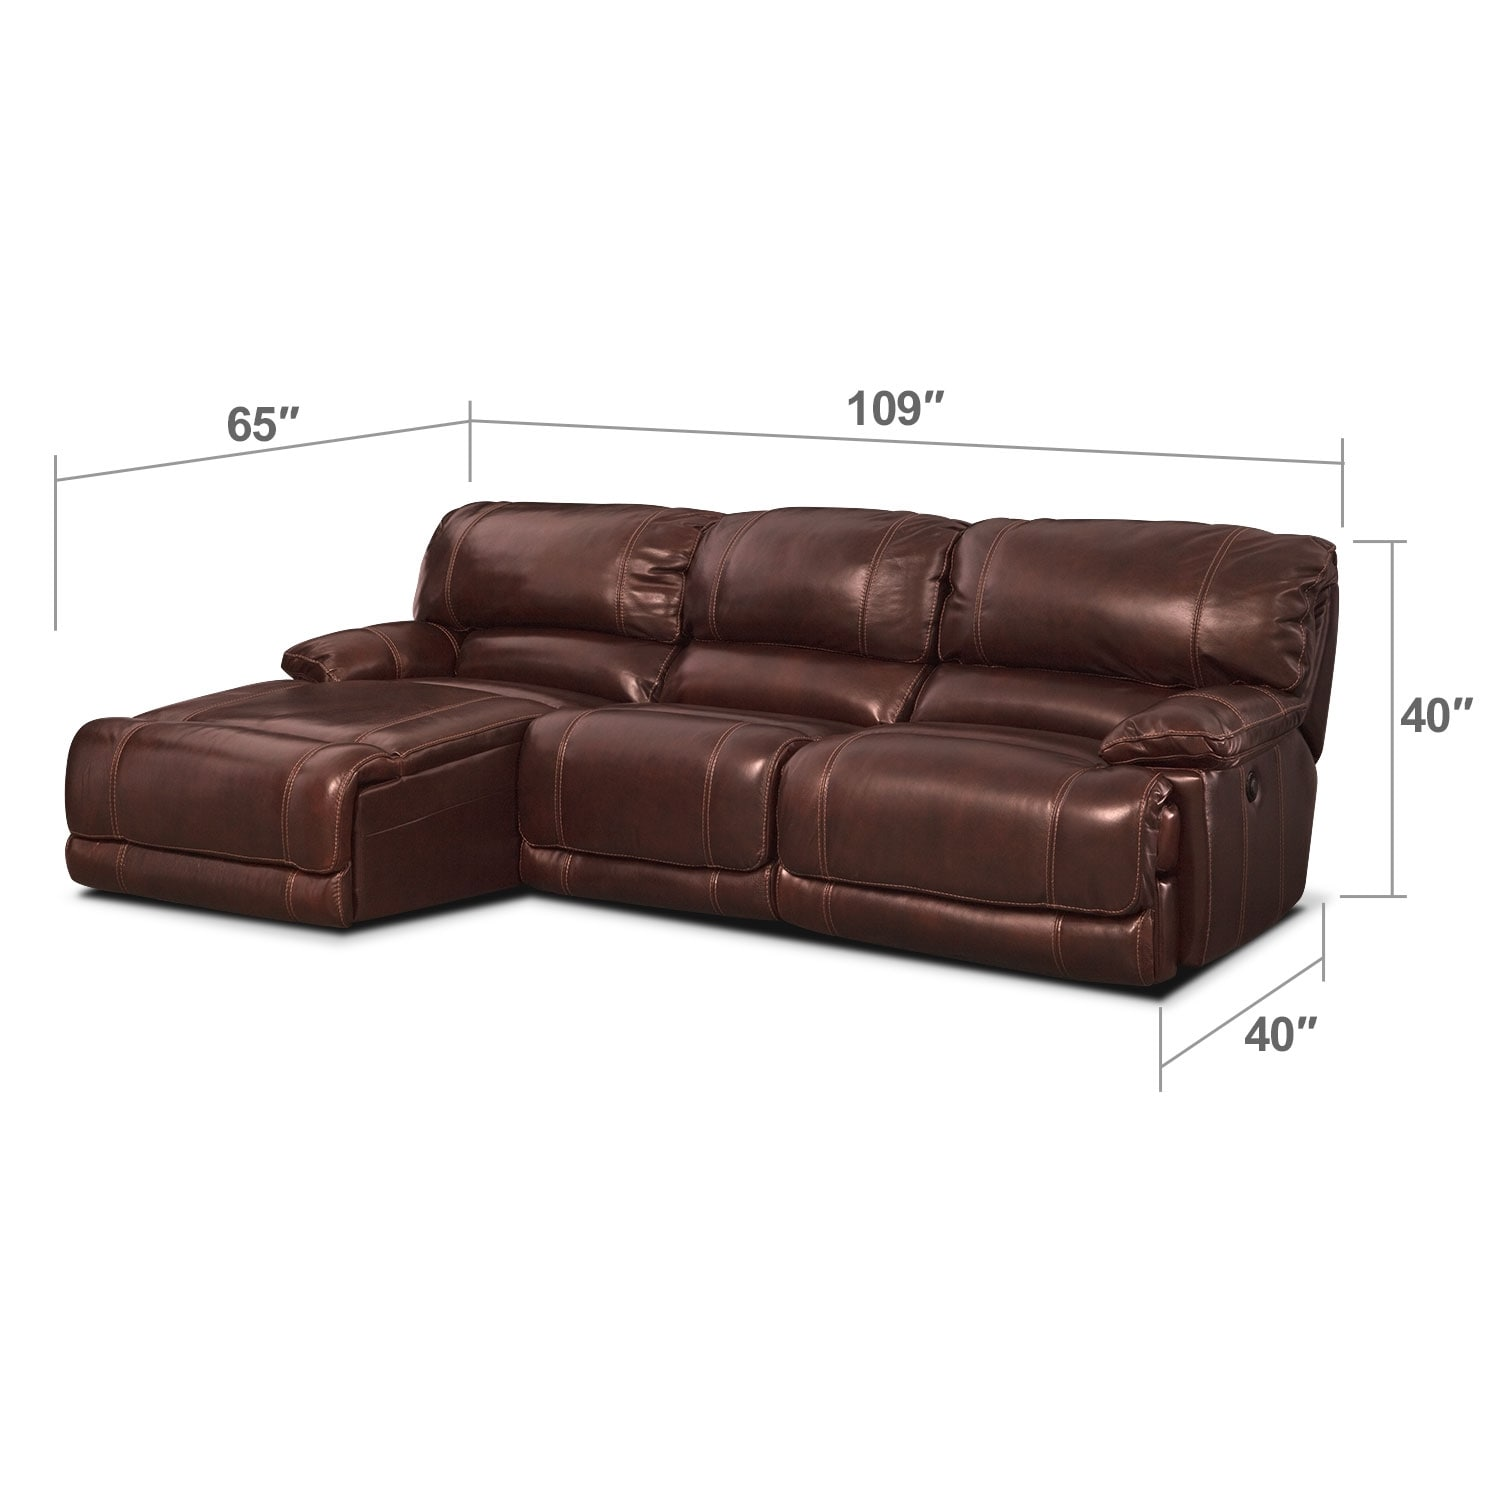 Living Room Furniture - Clinton Burgundy 3 Pc. Power Reclining Sectional (Reverse)